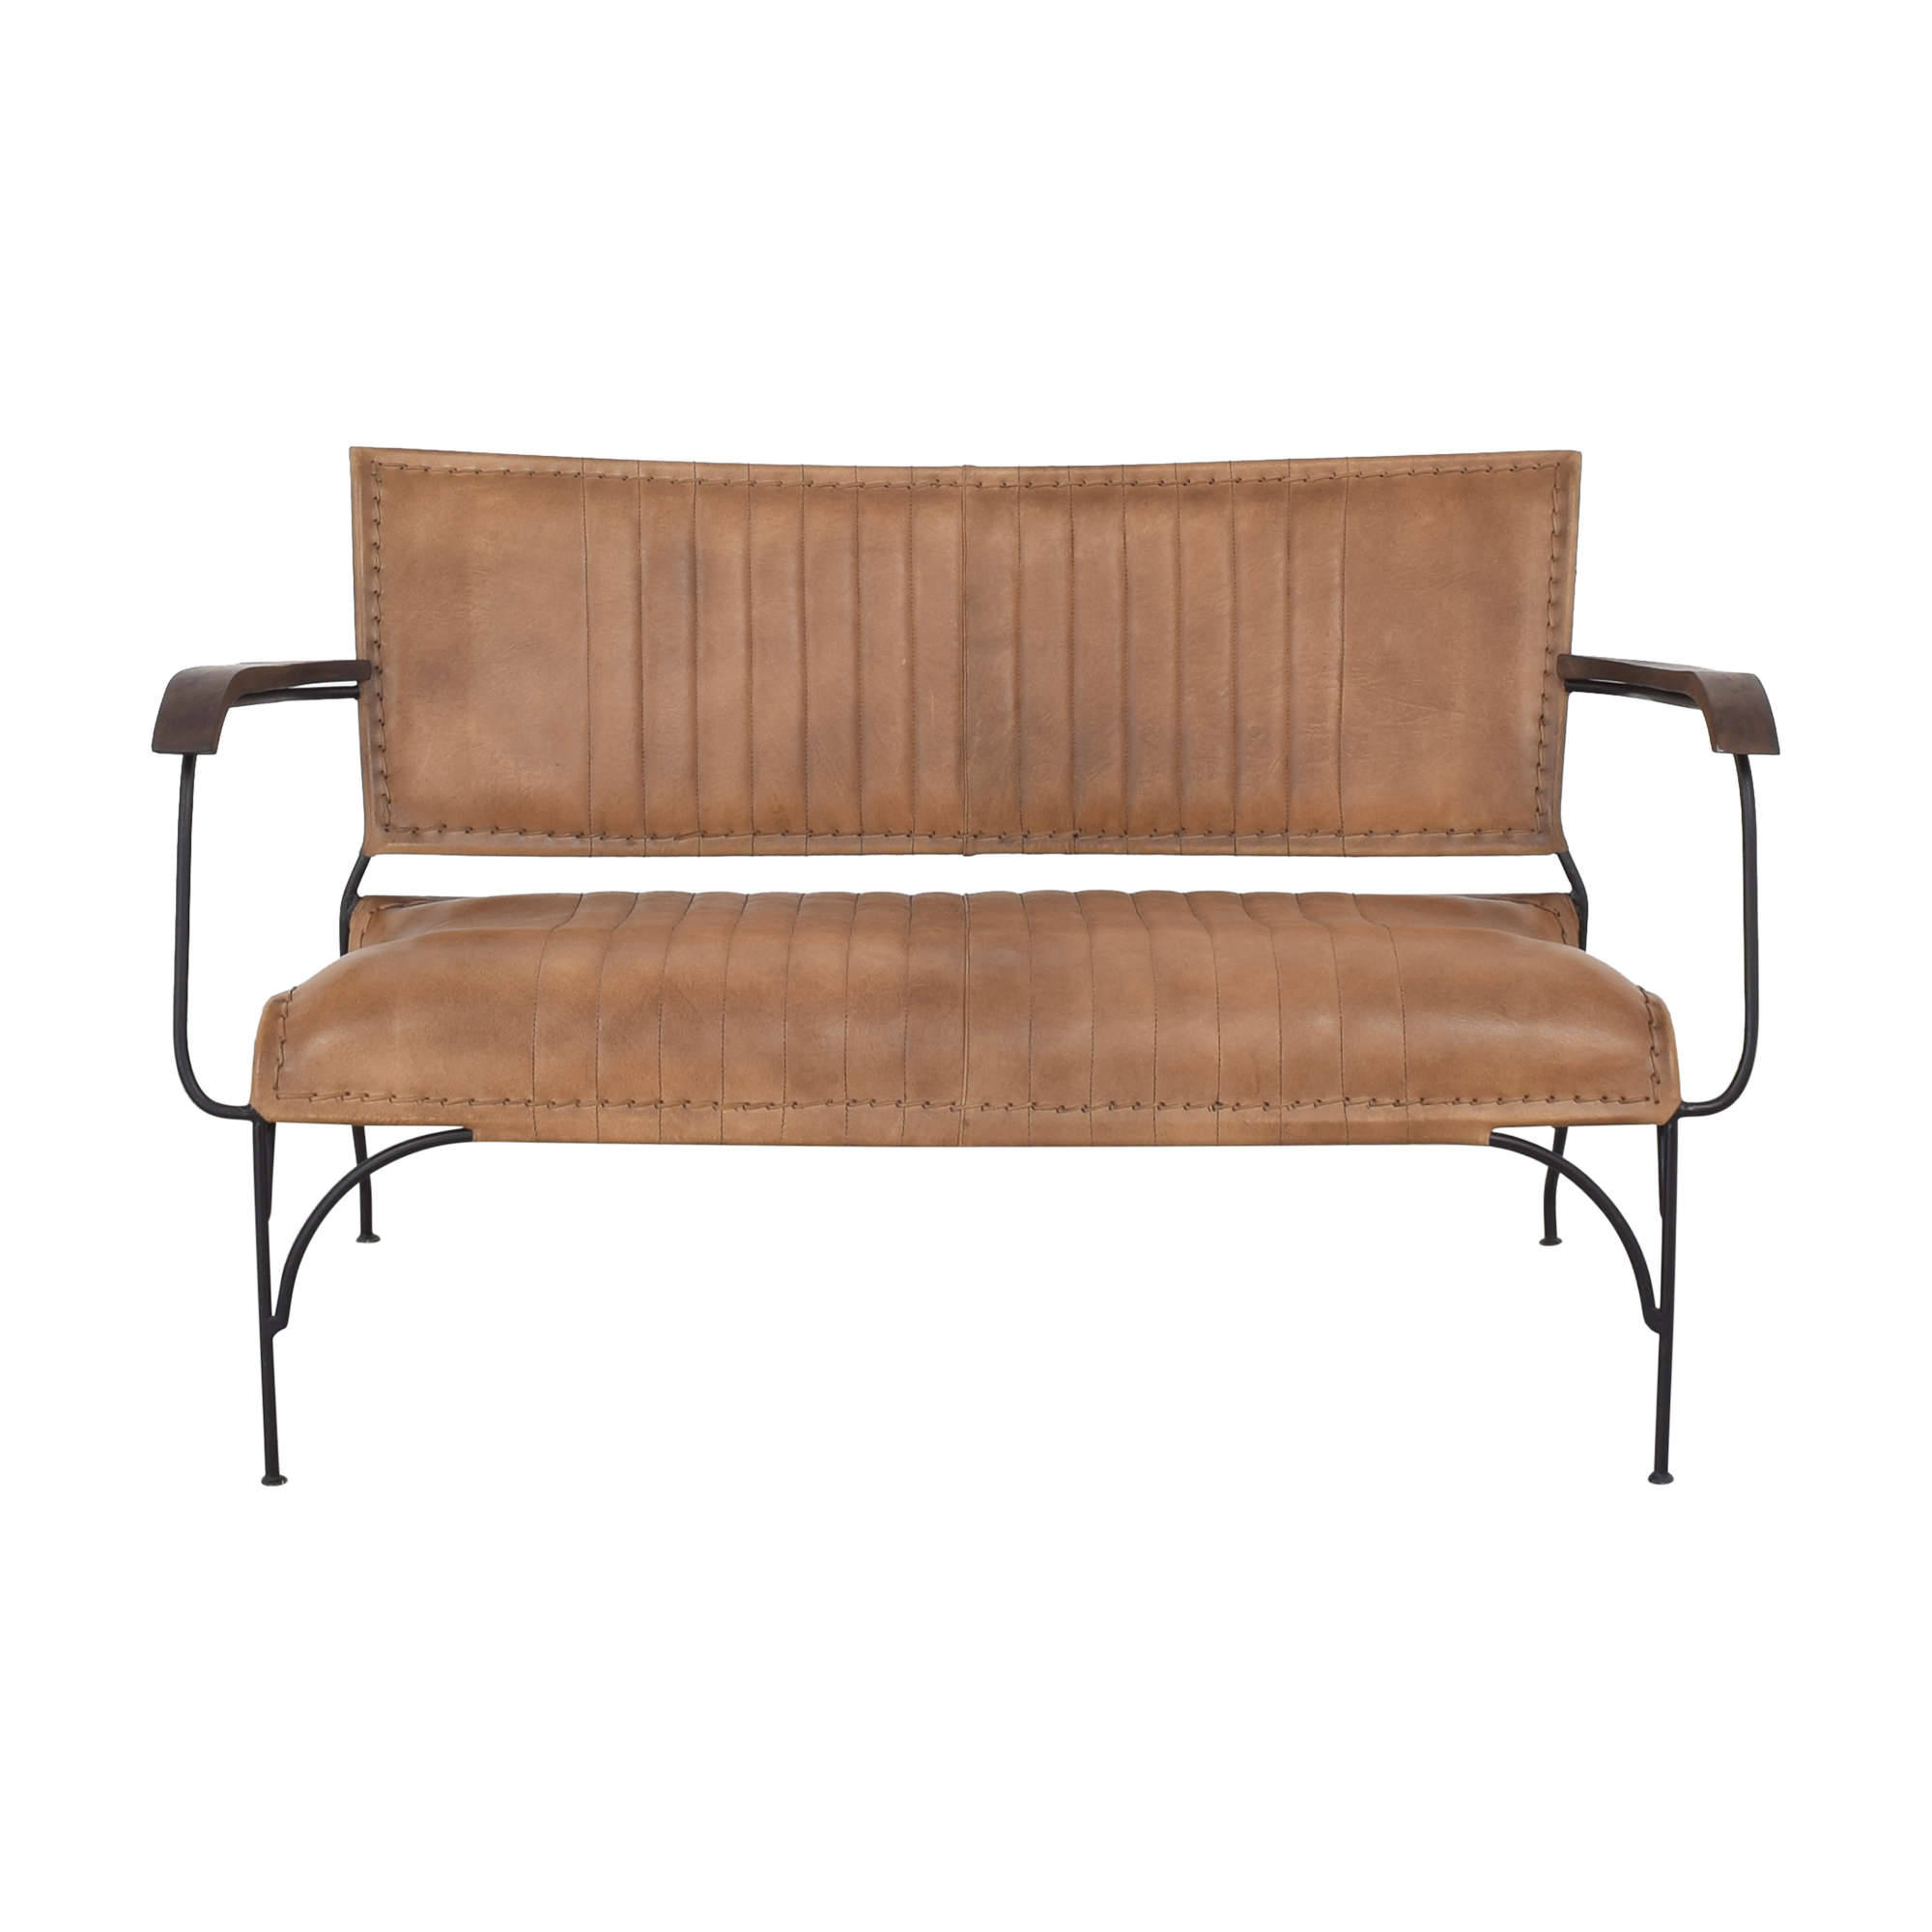 Wayfair Wayfair Wrentham Square Arm Loveseat discount